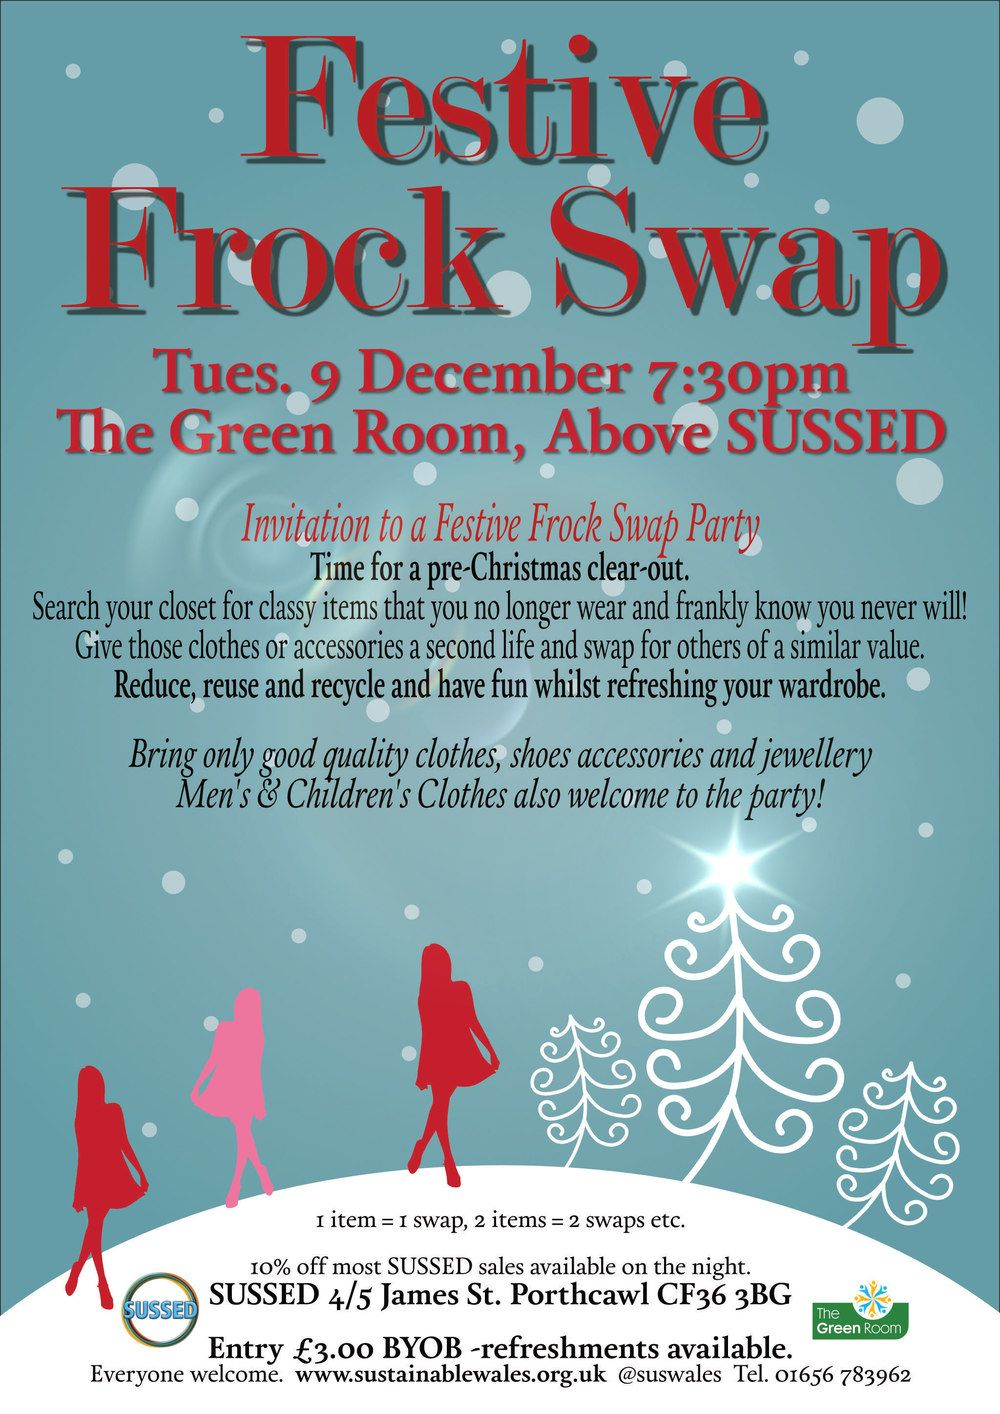 Events Sussed Frock Swap 9 December Porthcawl Event Swap